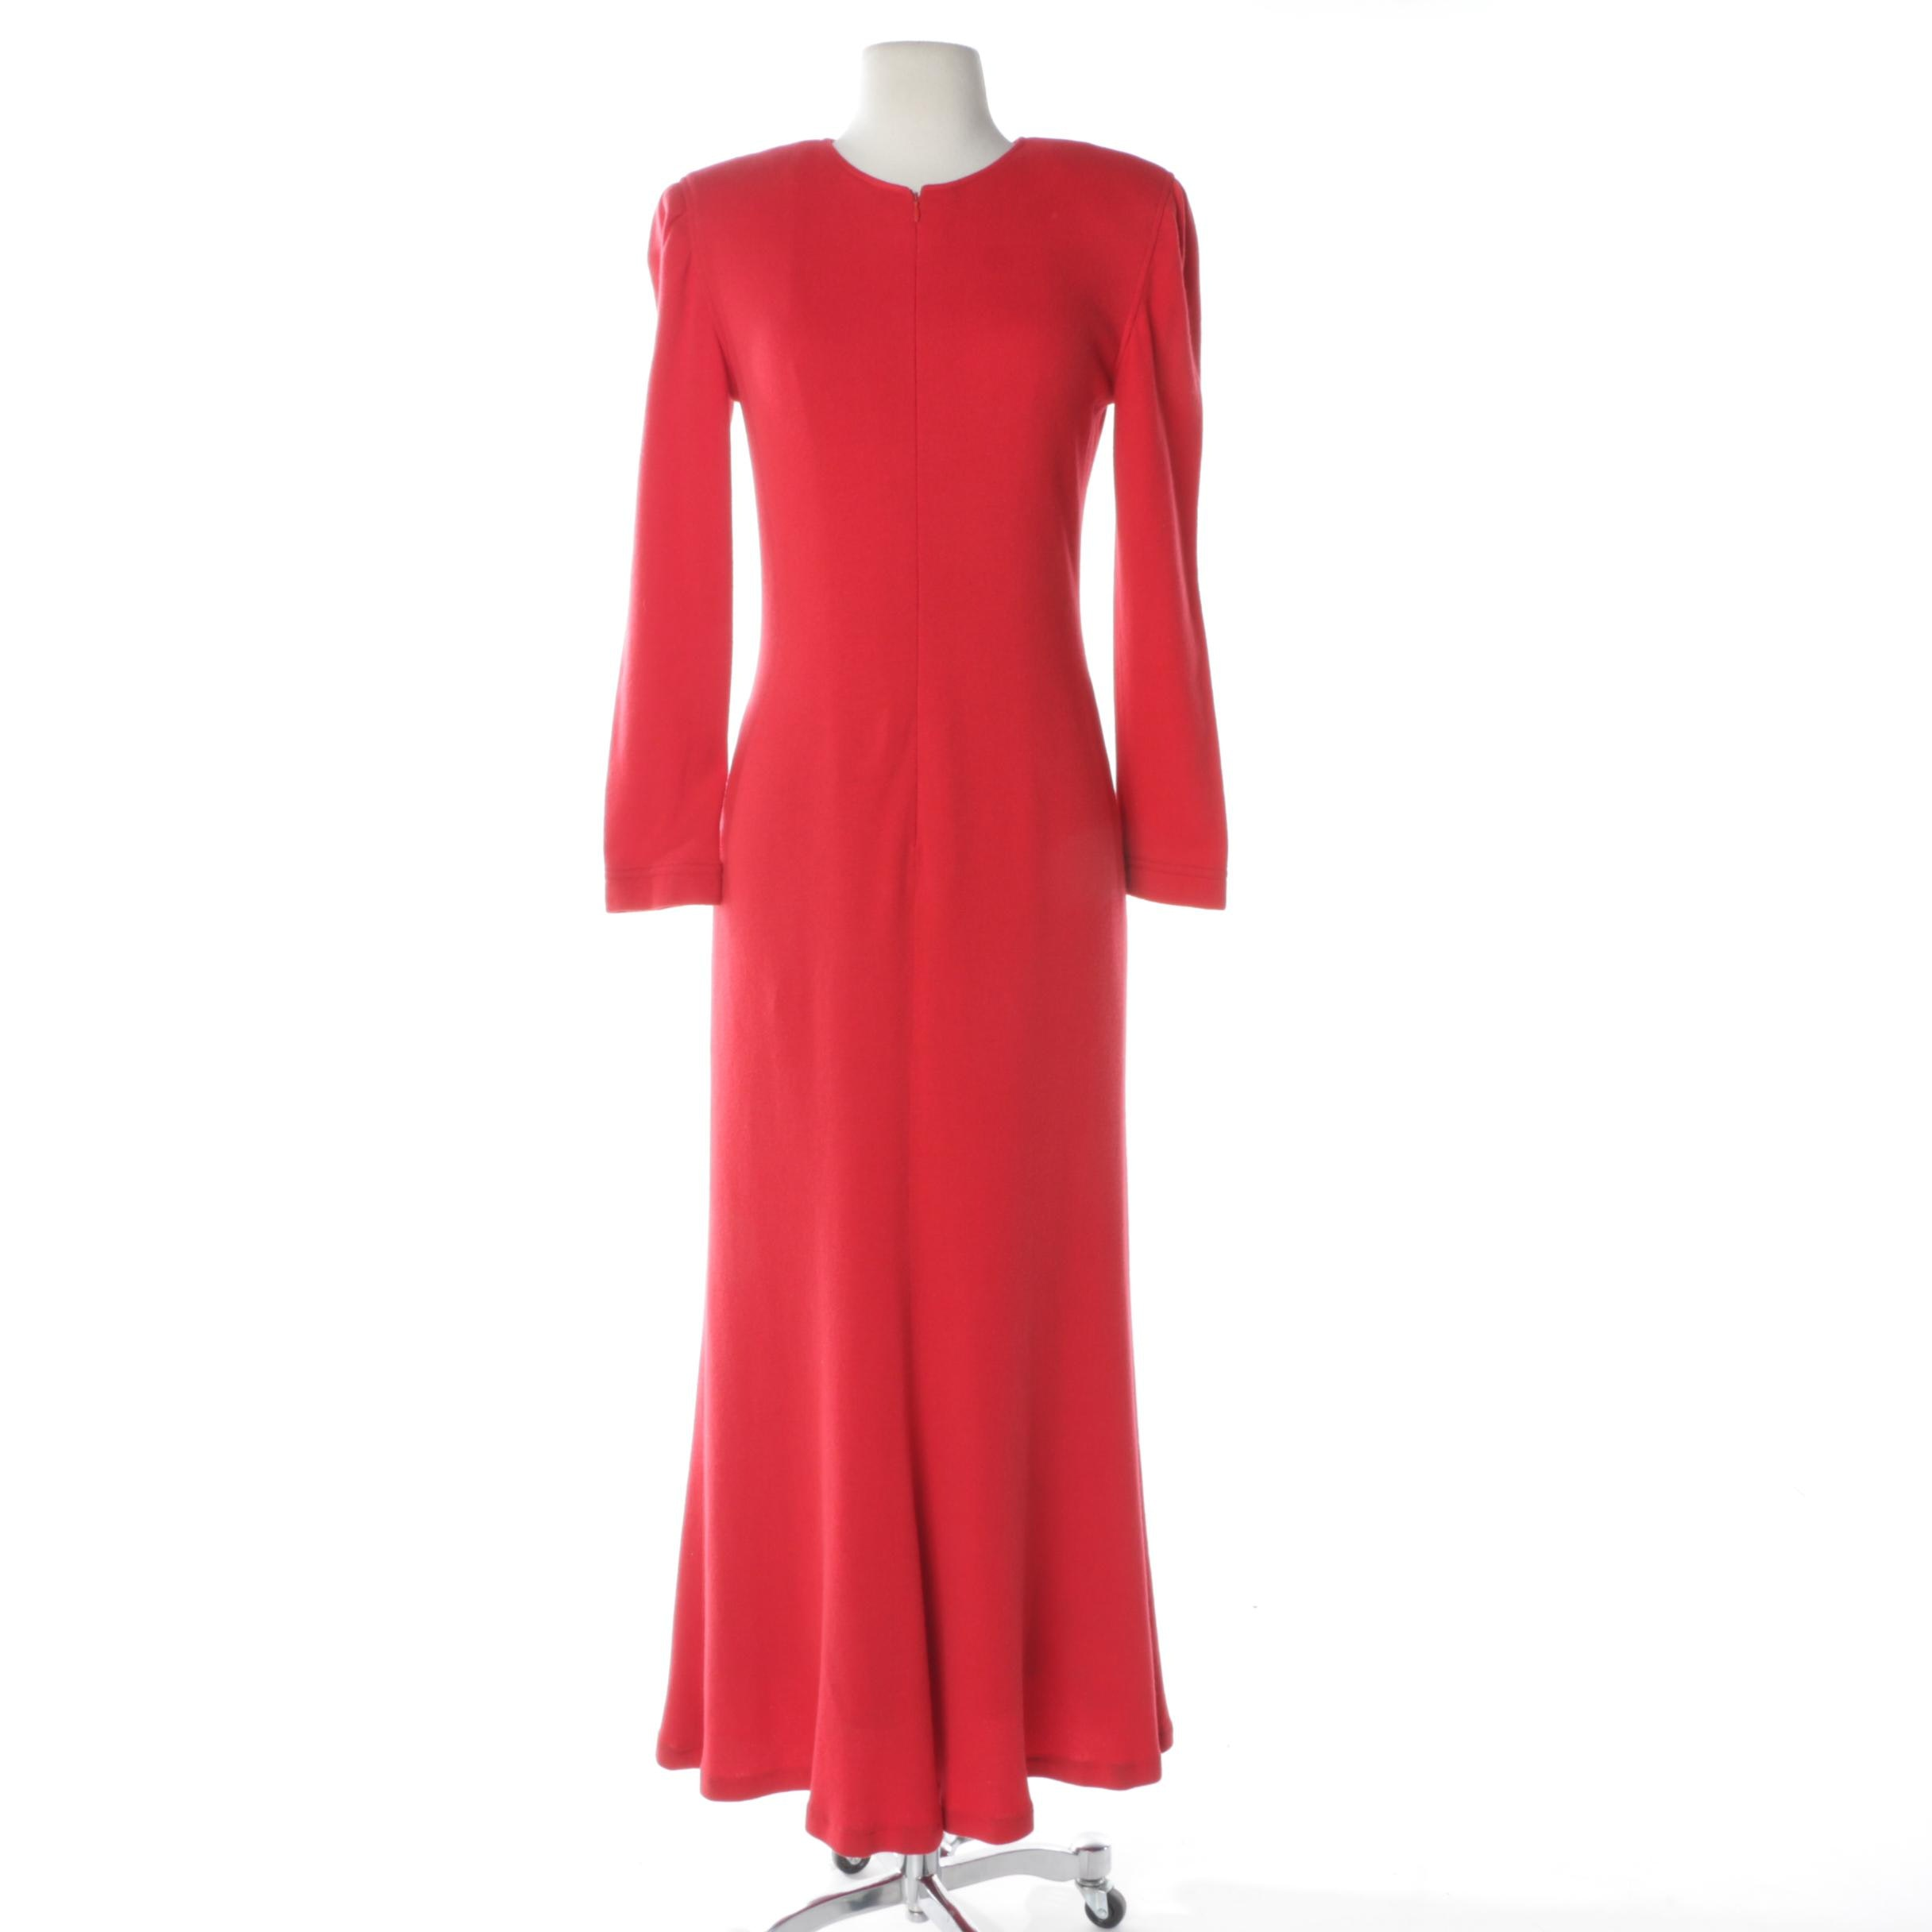 Vintage Oscar de la Renta Red Wool Dress